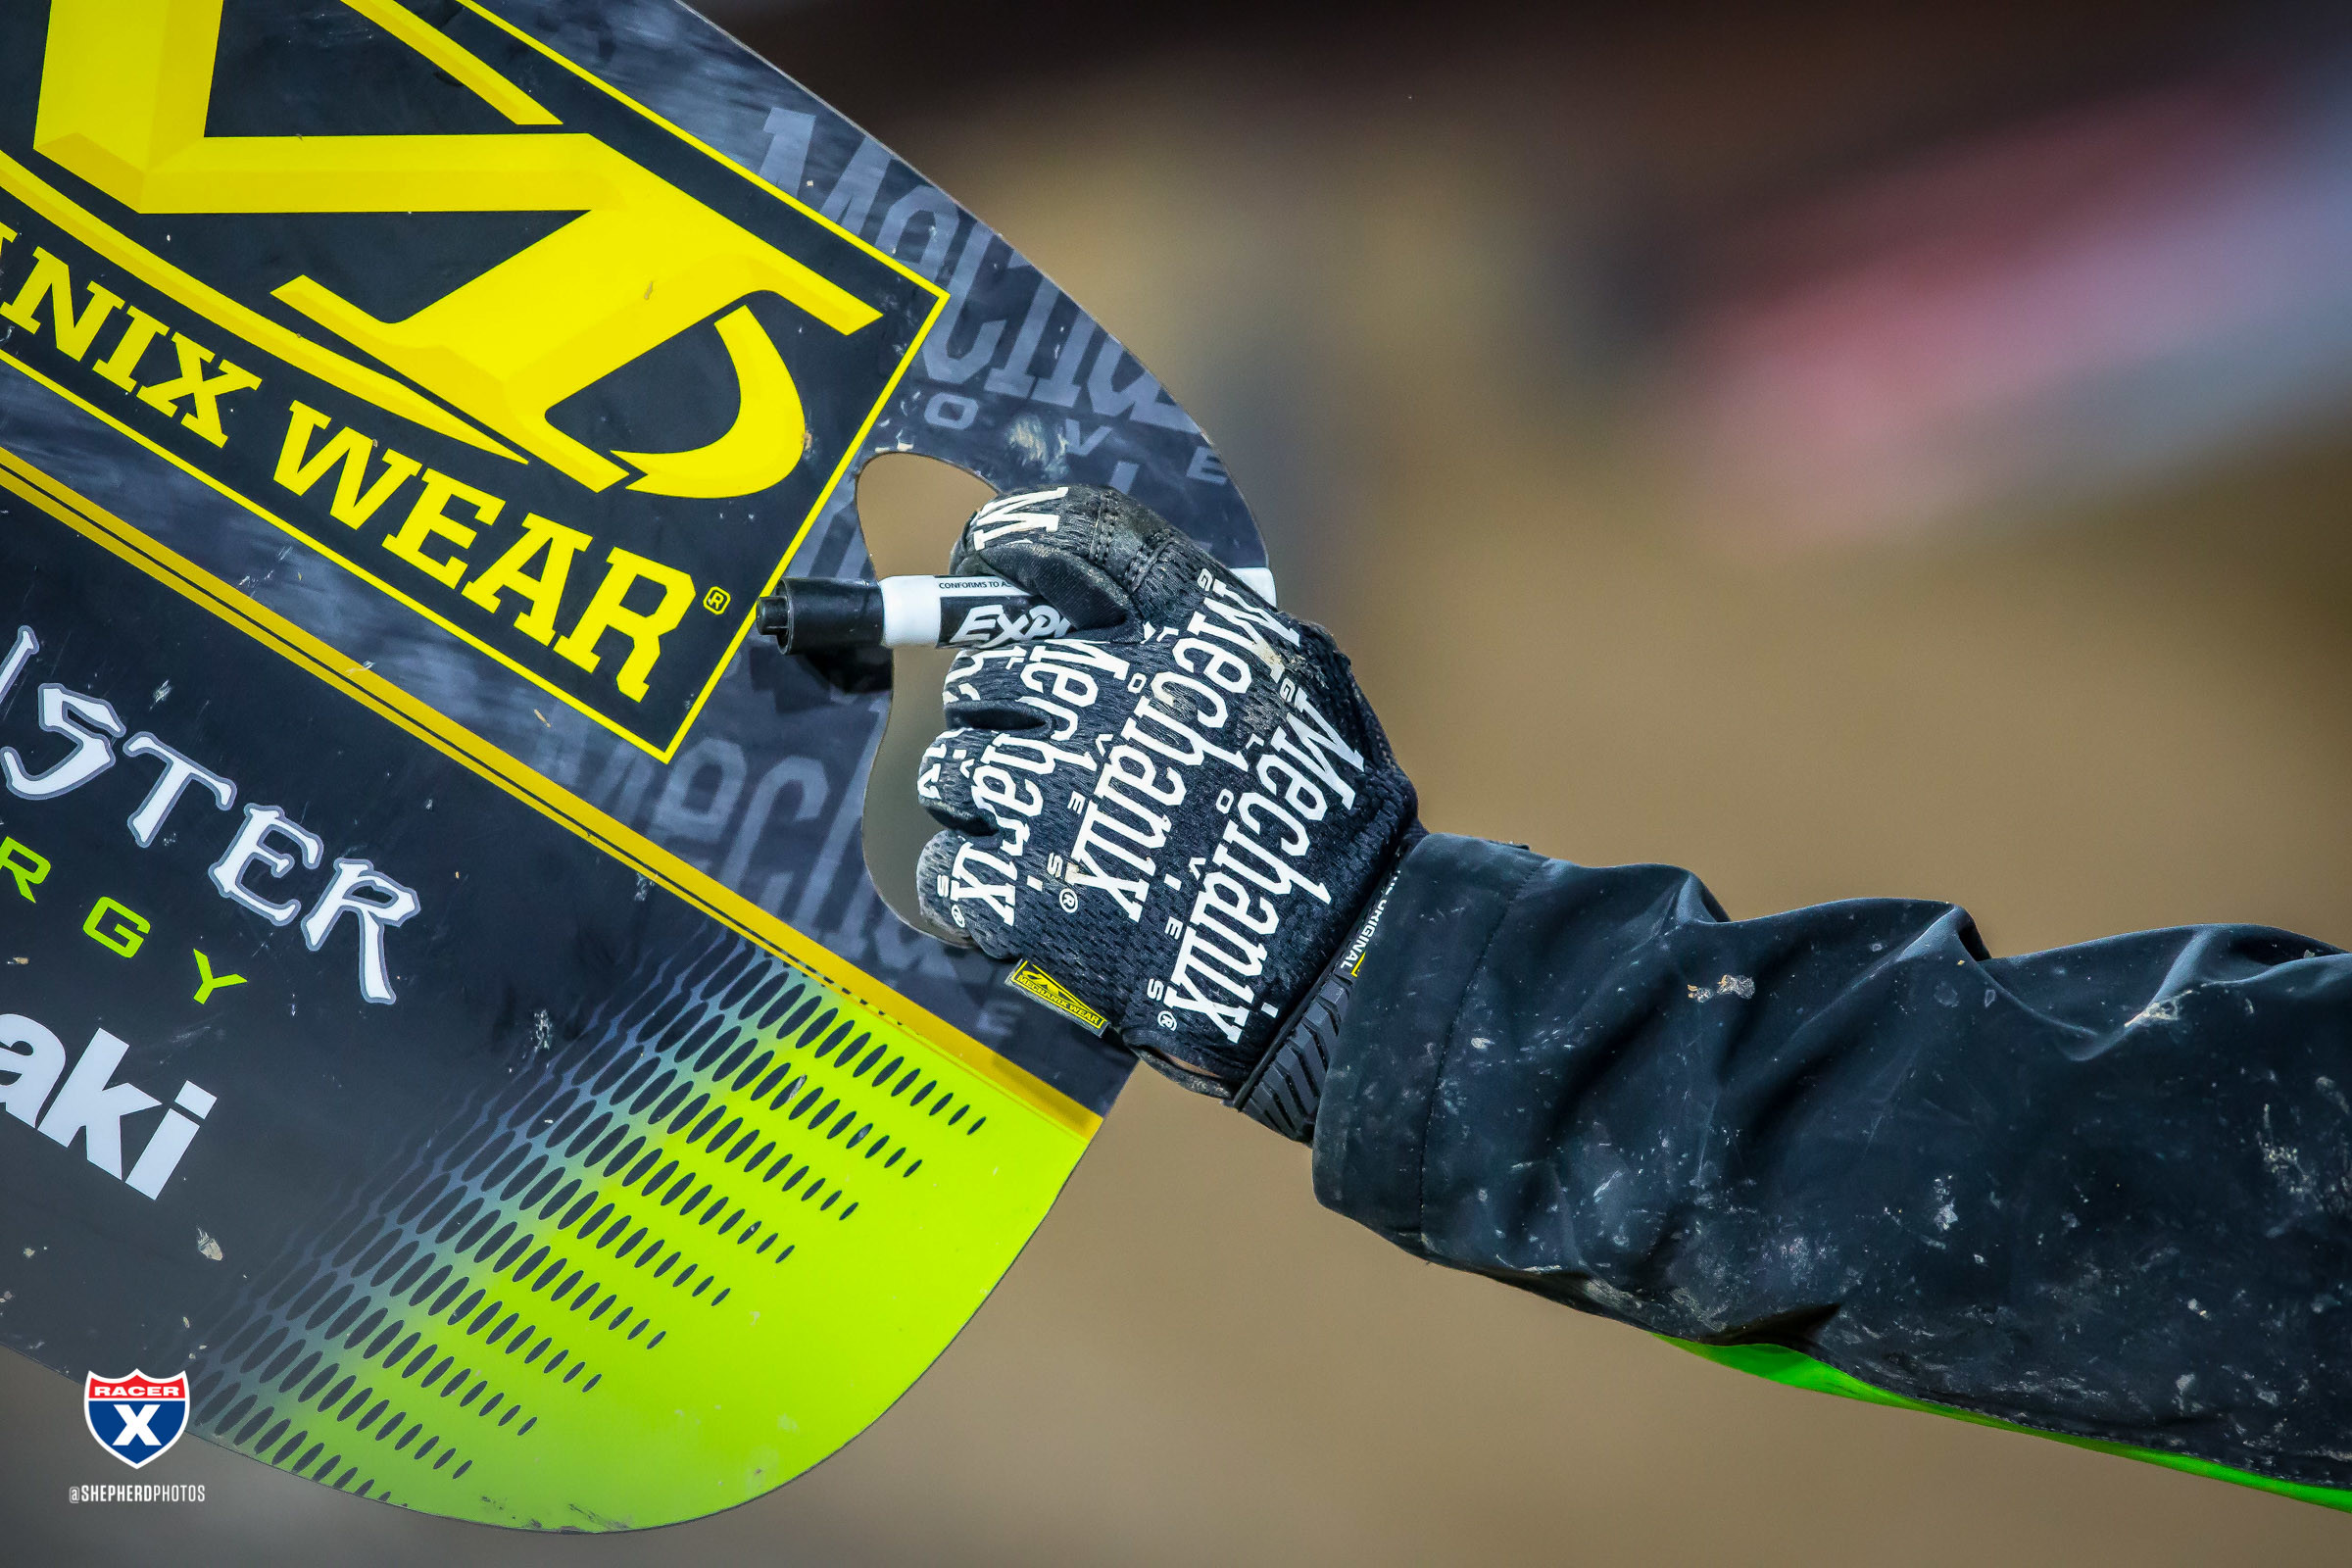 Mechanix_Wear_RS_SX19_San_Diego_001